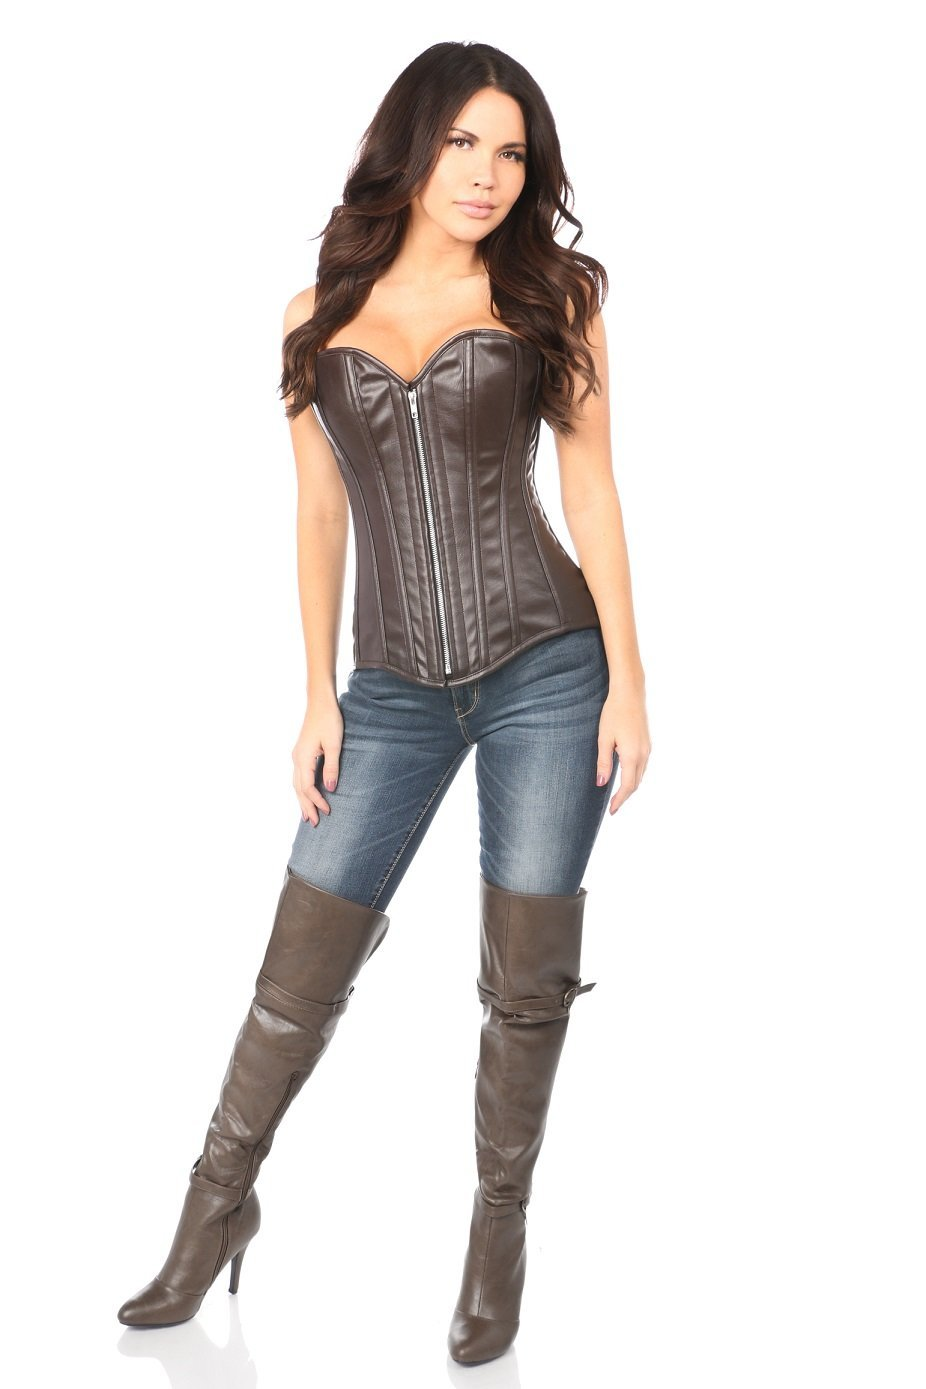 79020b081 Daisy Corsets Top Drawer Distressed Dark Brown Faux Leather Steel Boned  Corset